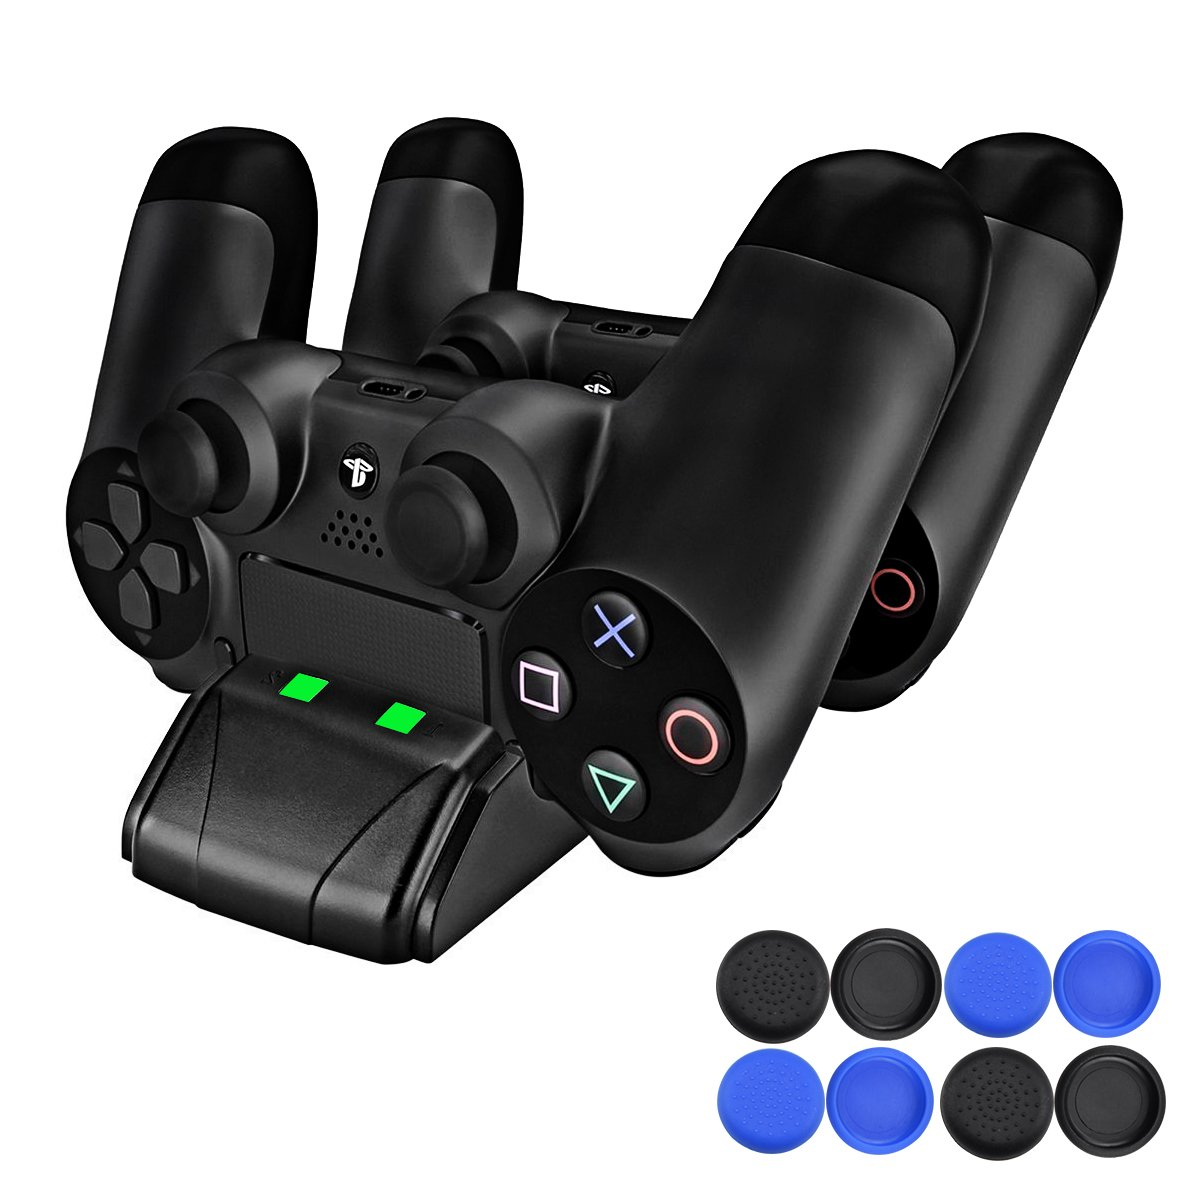 PECHAM PS4 Controller Charger, DualShock 4 Mini Charging Station Dock with LED Indicator - Additional: USB Cable, 8 Thumb Grips Accessories for Joysticks